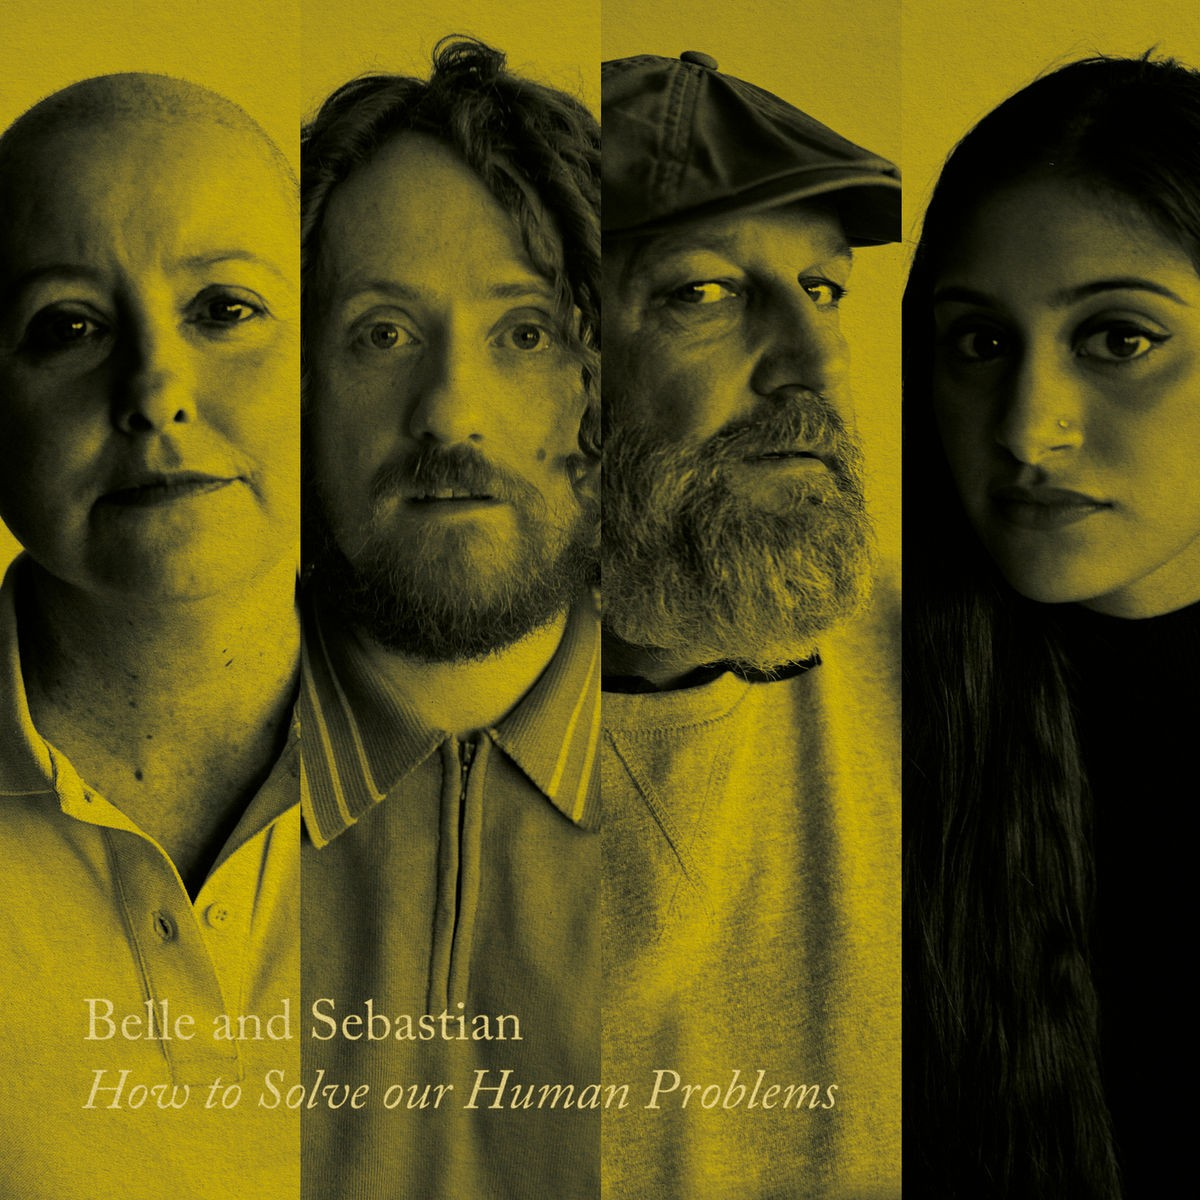 Belle And Sebastian - How to Solve Our Human Problems, Pt. 2 - EP VINYL - OLE11951